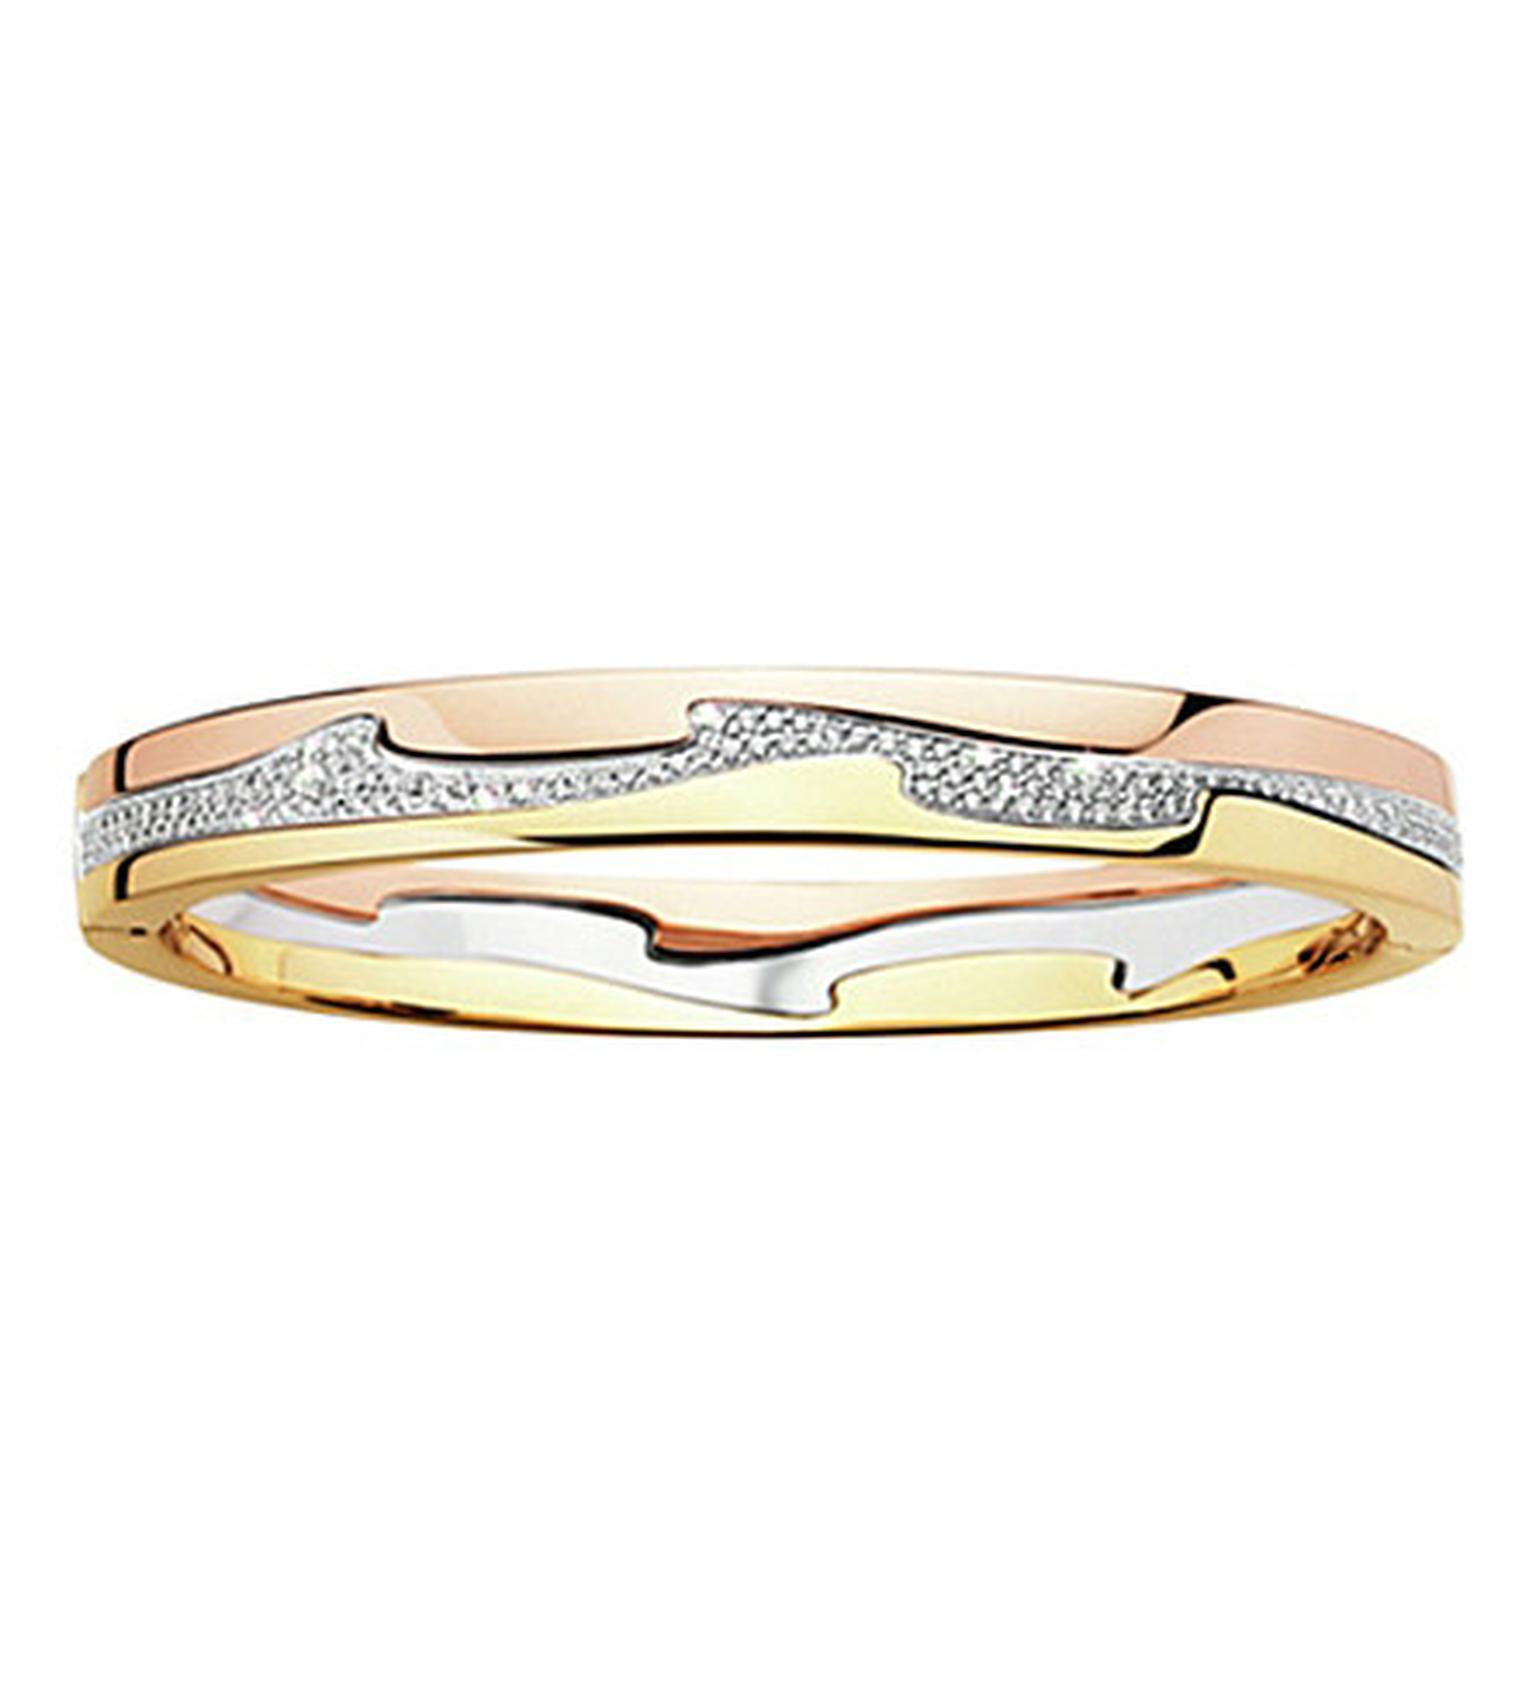 Georg Jensen Fusion bangle with yellow, white and rose gold and a melée of diamonds (£5,025).